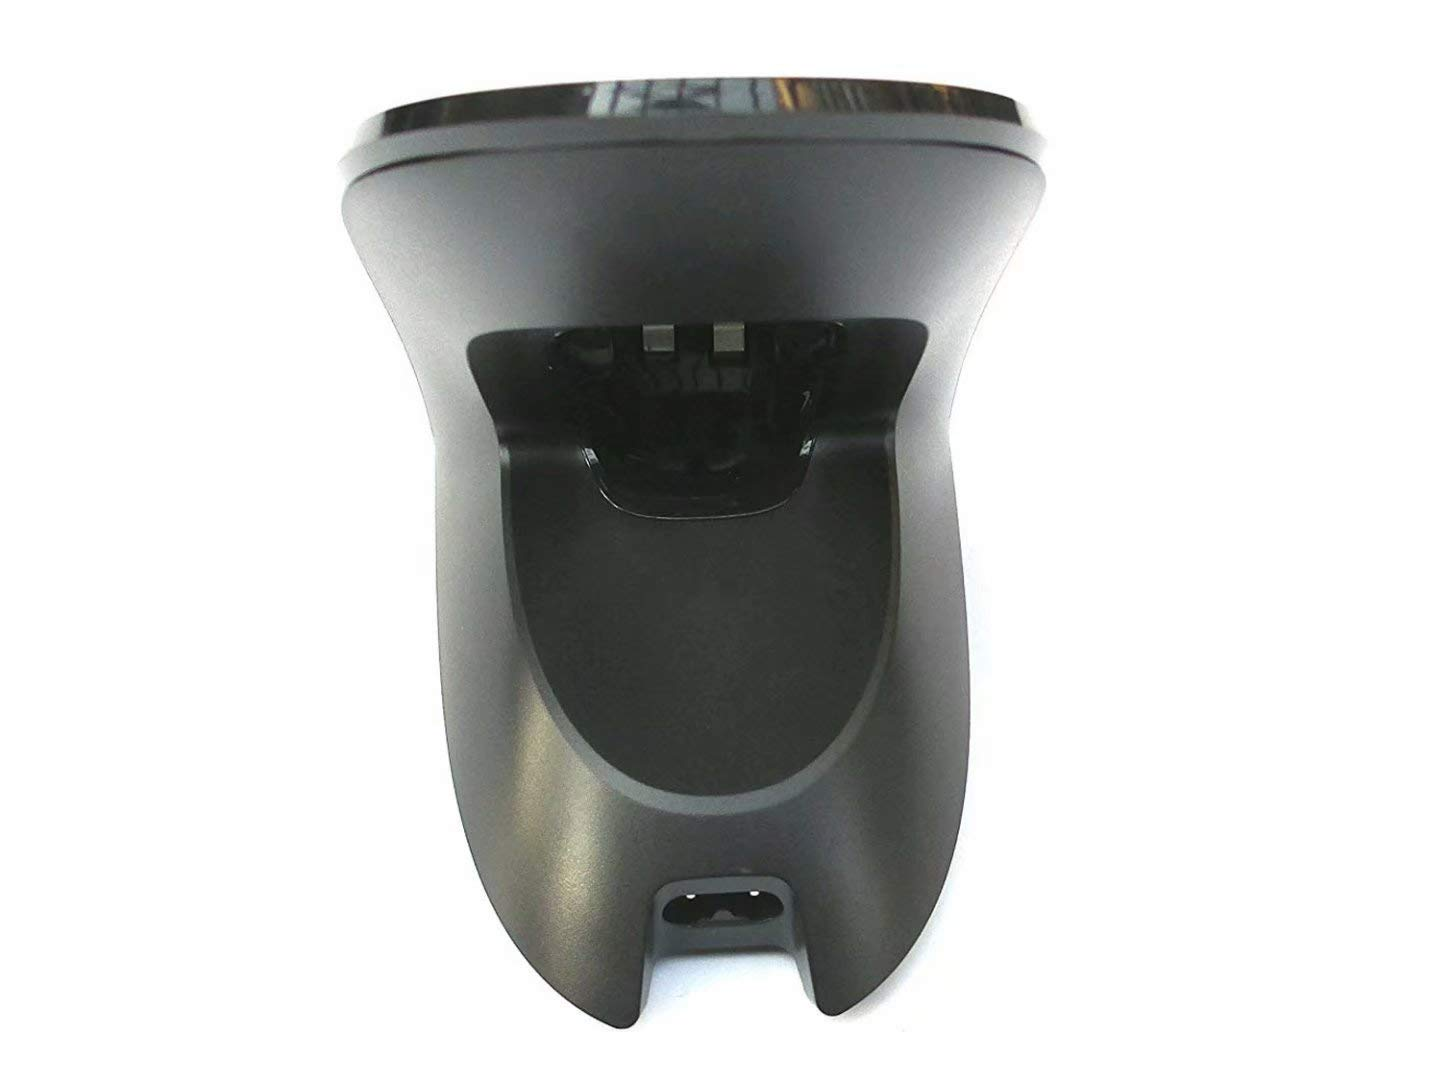 Replacement Discount is also underway Electric Max 59% OFF Charging Stand Replacing Philips Bodygr For